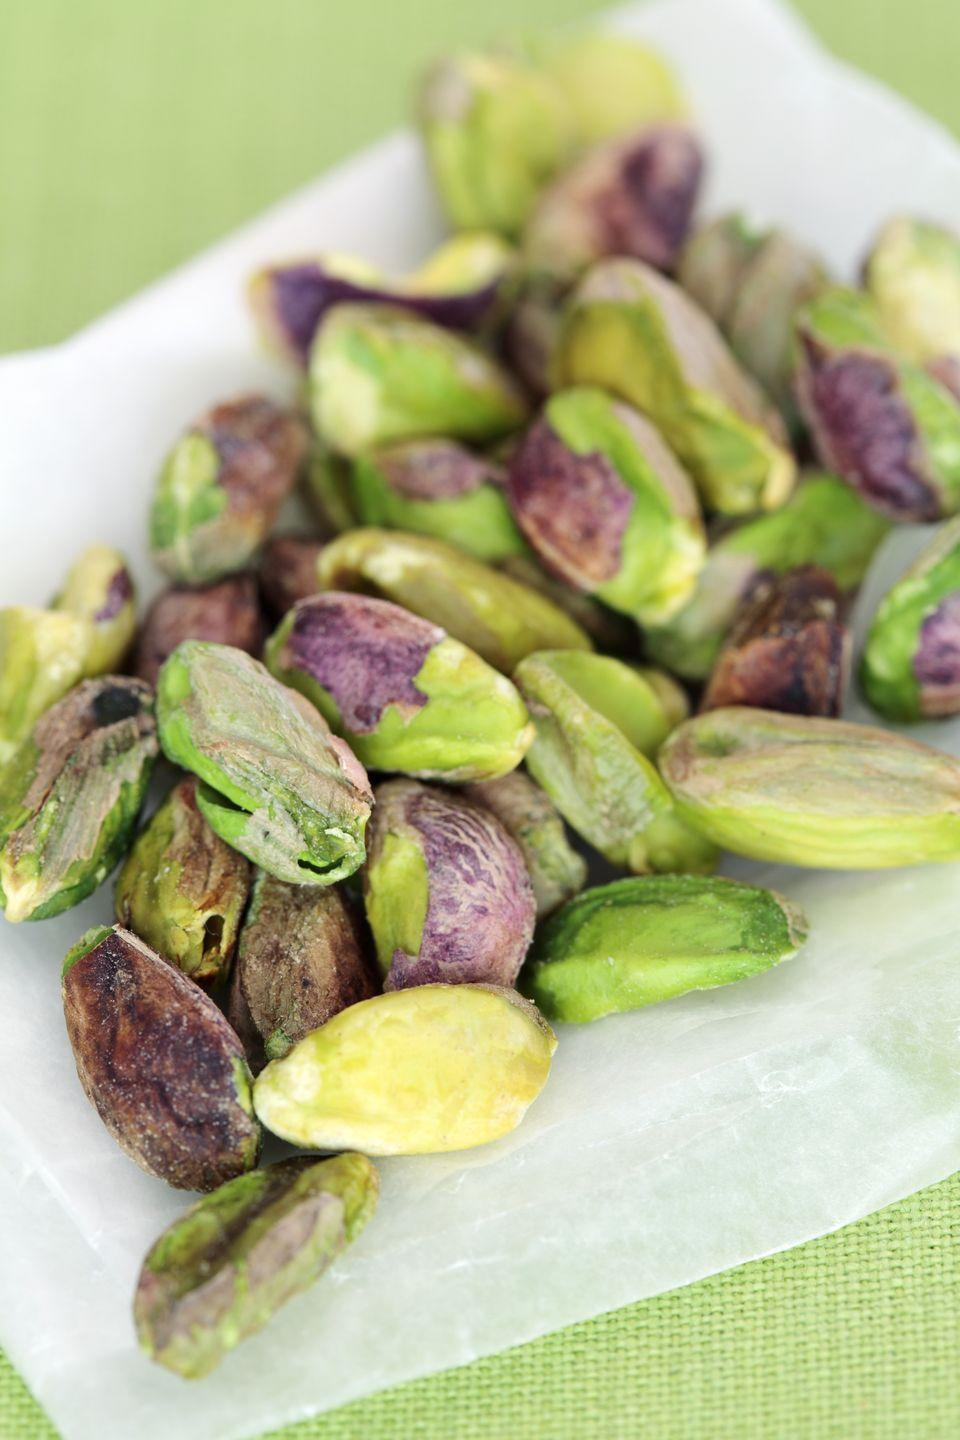 """<p>Pistachios hit the sleep-inducing jackpot, packing in protein, vitamin B6, and magnesium, all of which contribute to better sleep. Refrain from a shell-cracking frenzy, though. """"Don't exceed a 1-ounce portion of nuts,"""" London warns. """"Anything too high in calories can have the reverse effect of <a href=""""https://www.goodhousekeeping.com/health/a38462/why-you-shouldnt-bring-your-phone-into-bed/"""" rel=""""nofollow noopener"""" target=""""_blank"""" data-ylk=""""slk:keeping you awake"""" class=""""link rapid-noclick-resp"""">keeping you awake</a>!""""<br></p>"""